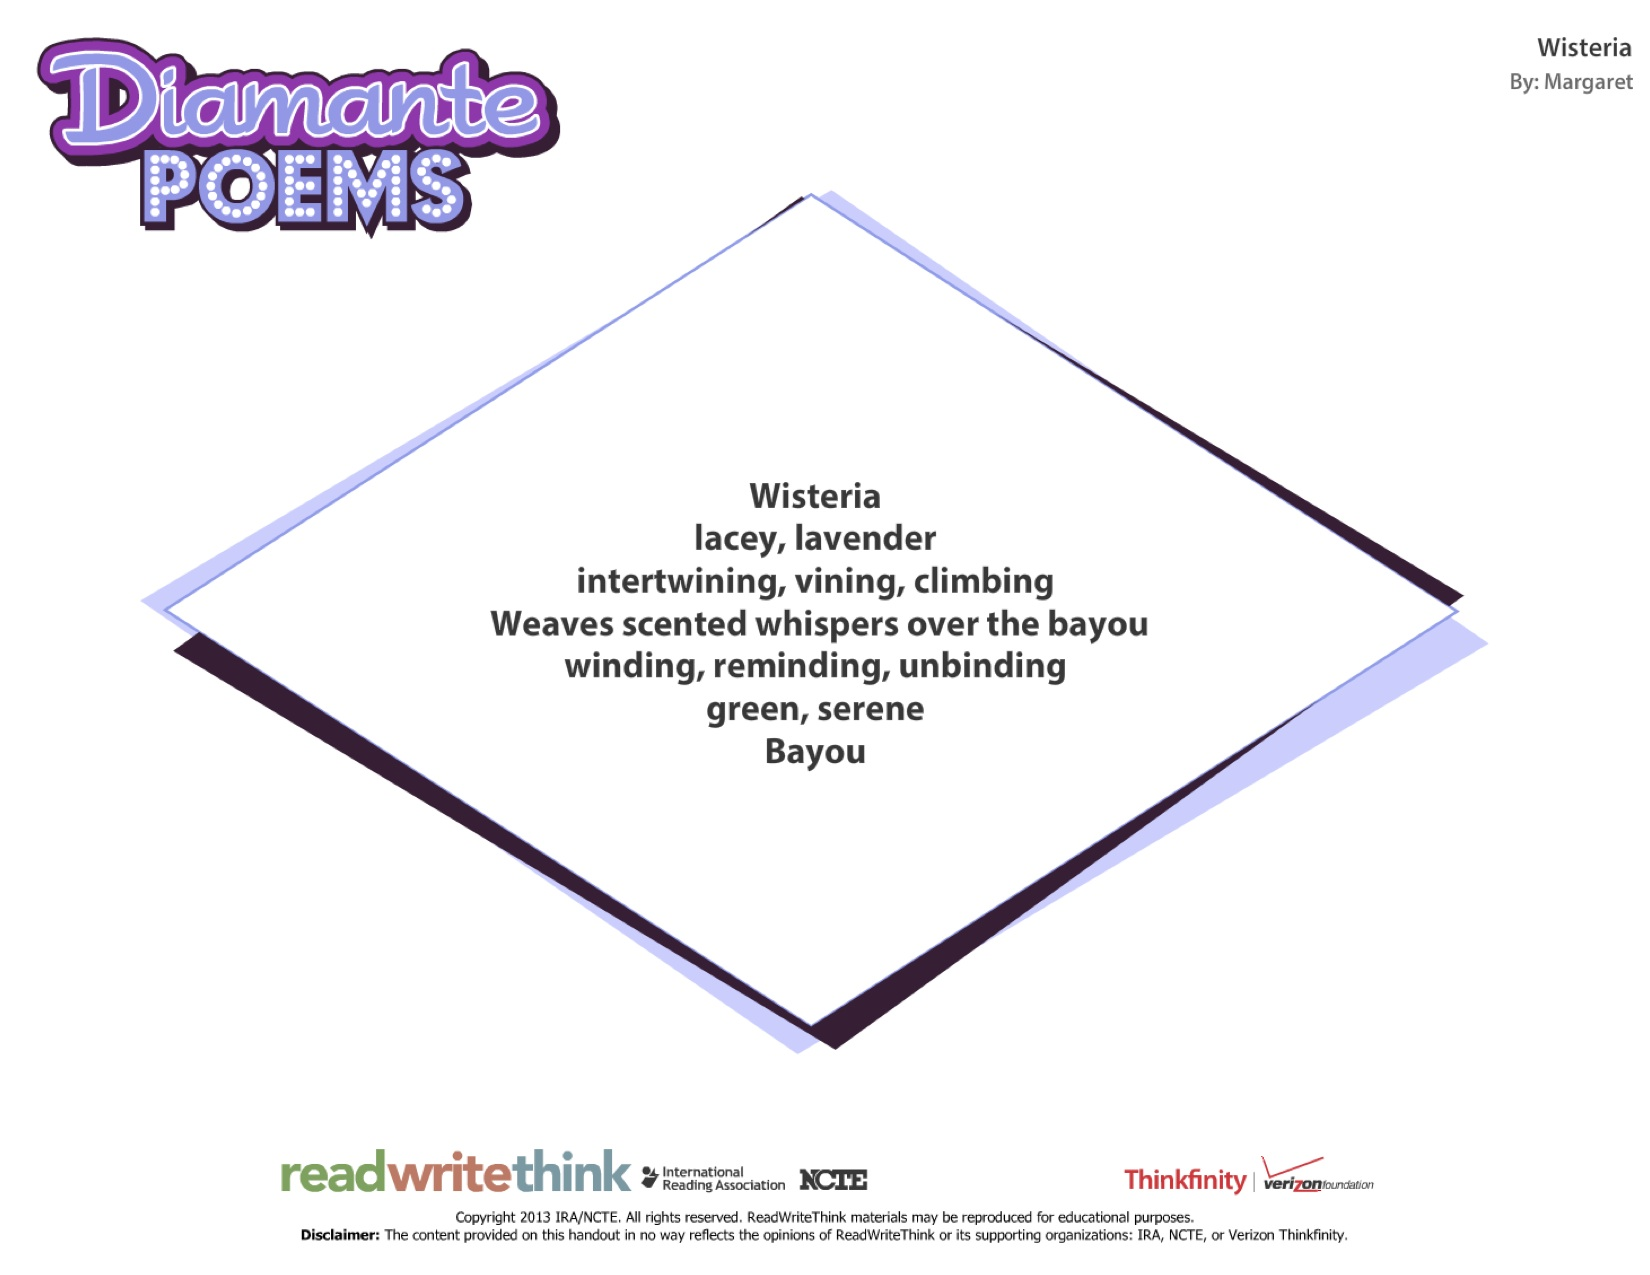 how to write a diamante poem A diamante poem is when line 1 and line 7 are opposites the poem usually resembles a diamond, [hence the name ()] line 1 is one word, what you're writing about.